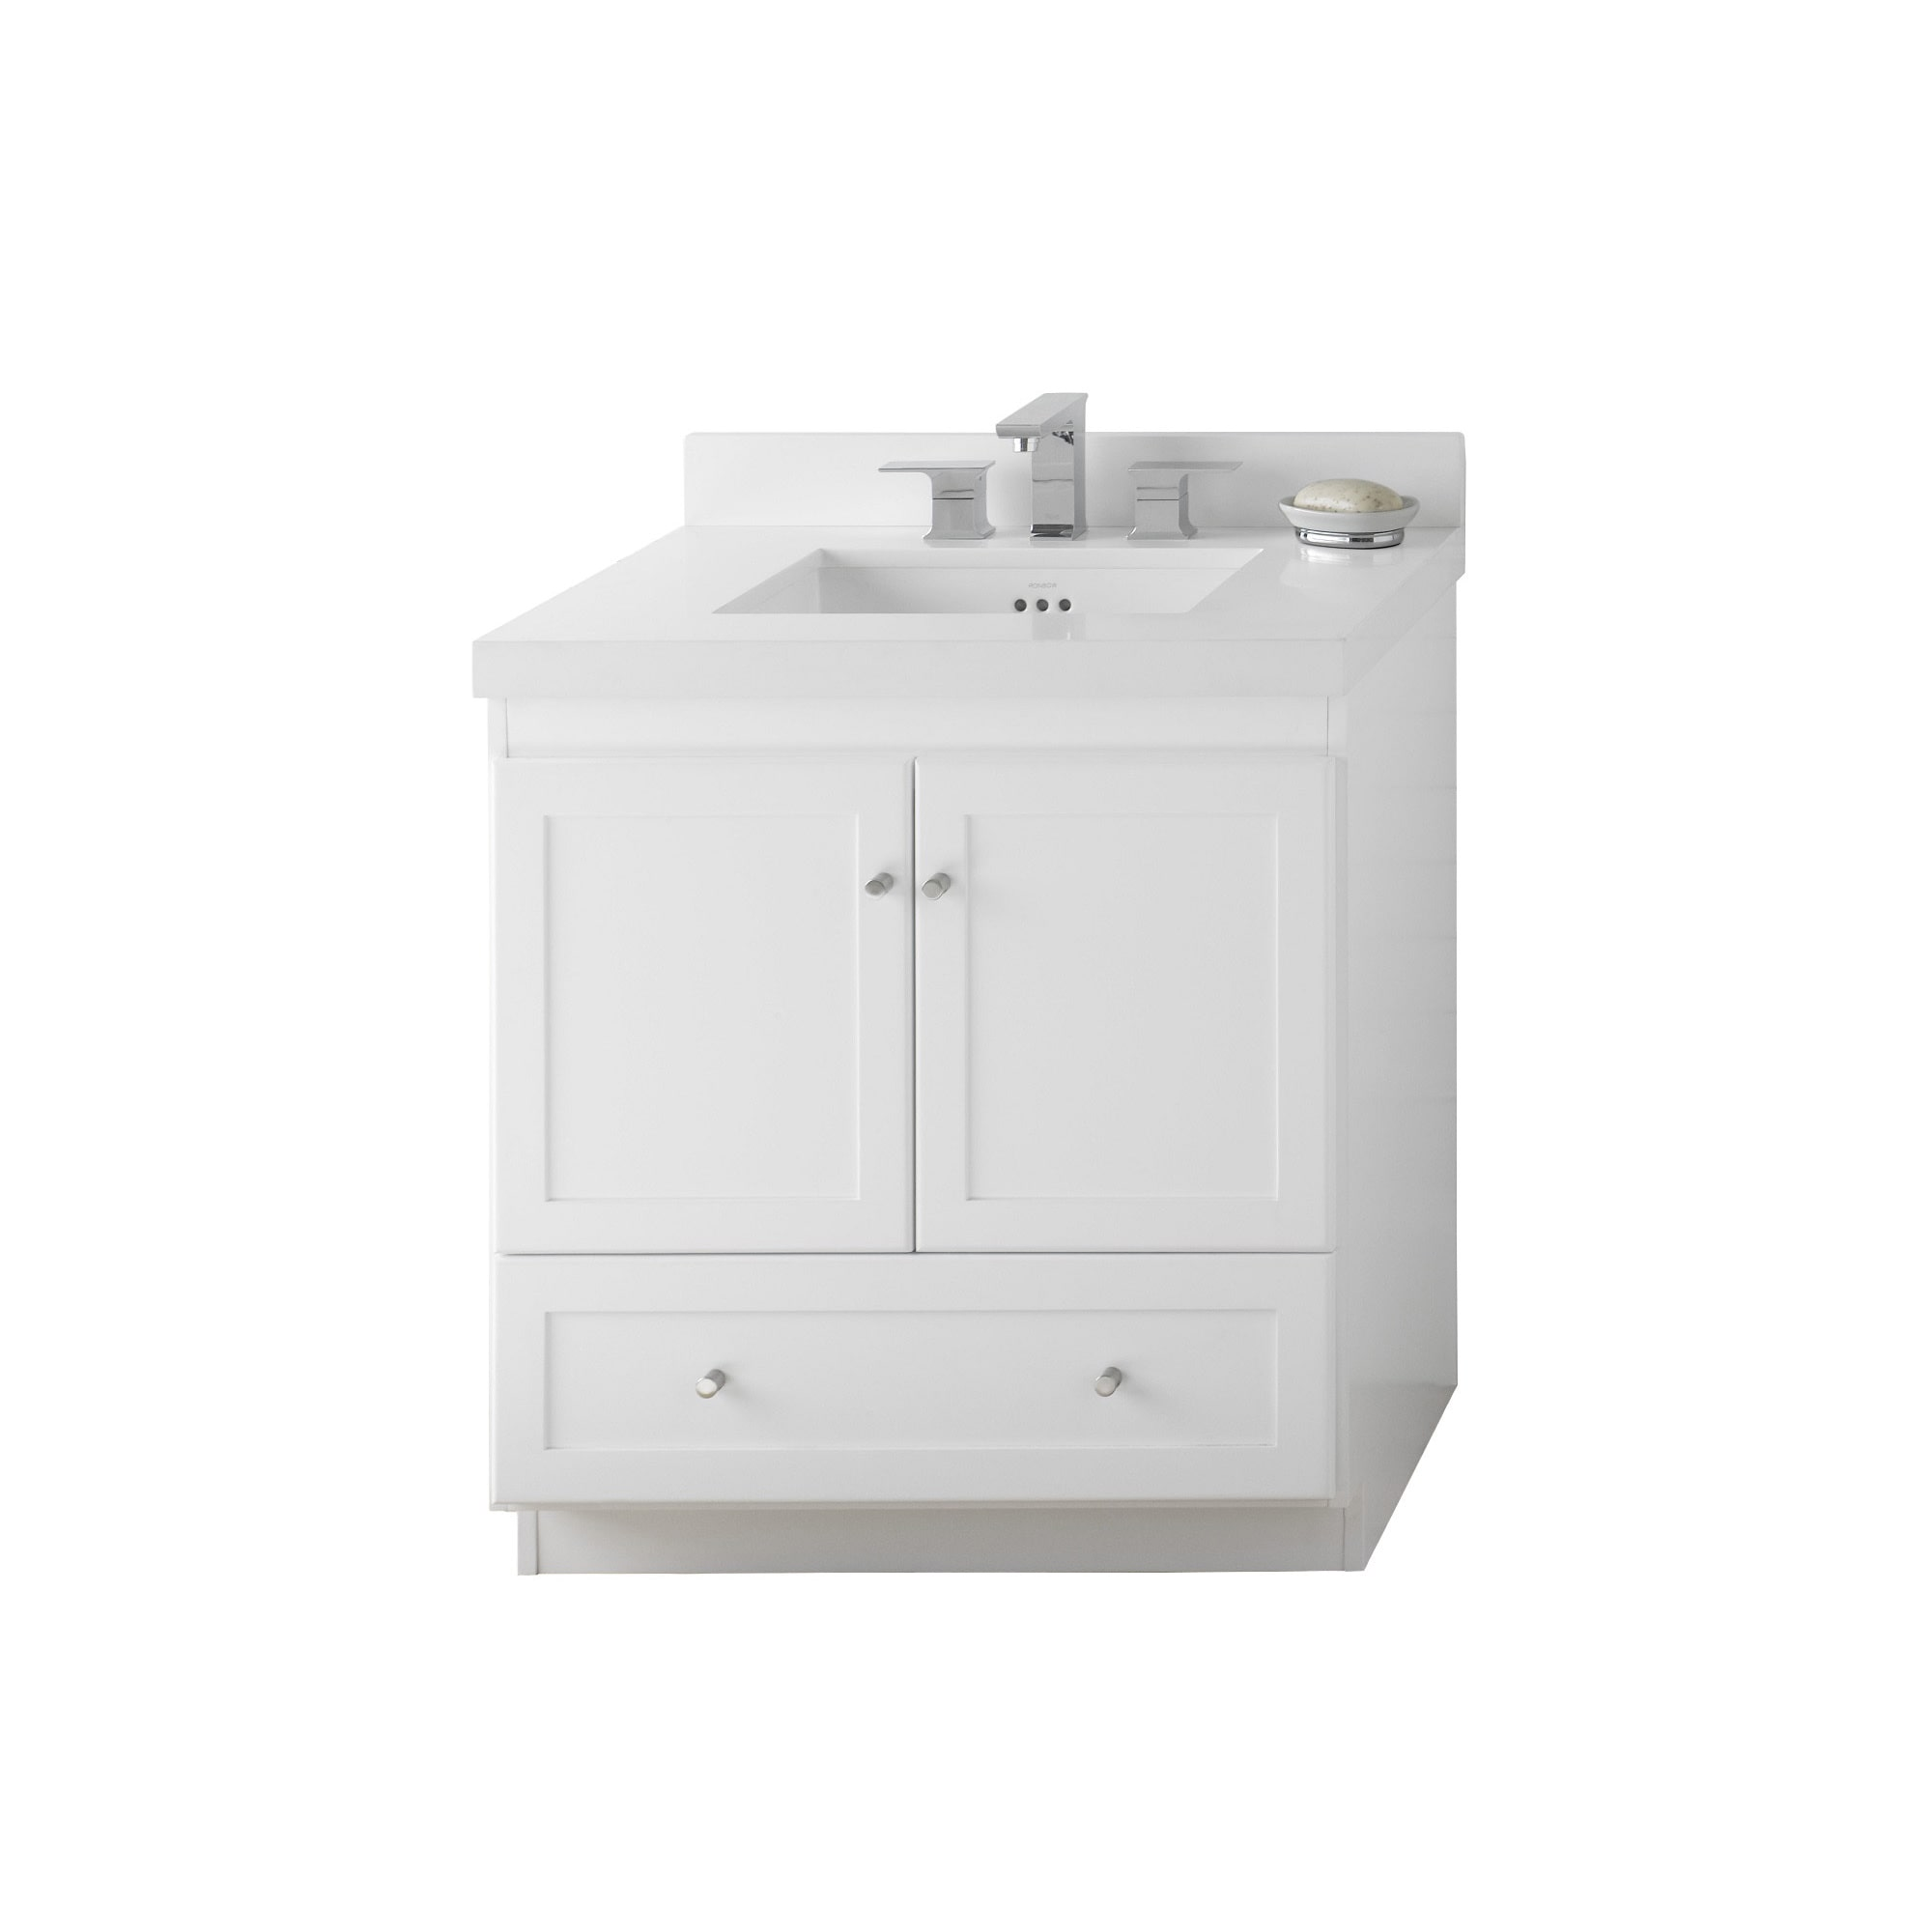 Ronbow Shaker 30 Inch Bathroom Vanity Set In White, Quartz Countertop And  Backsplash With